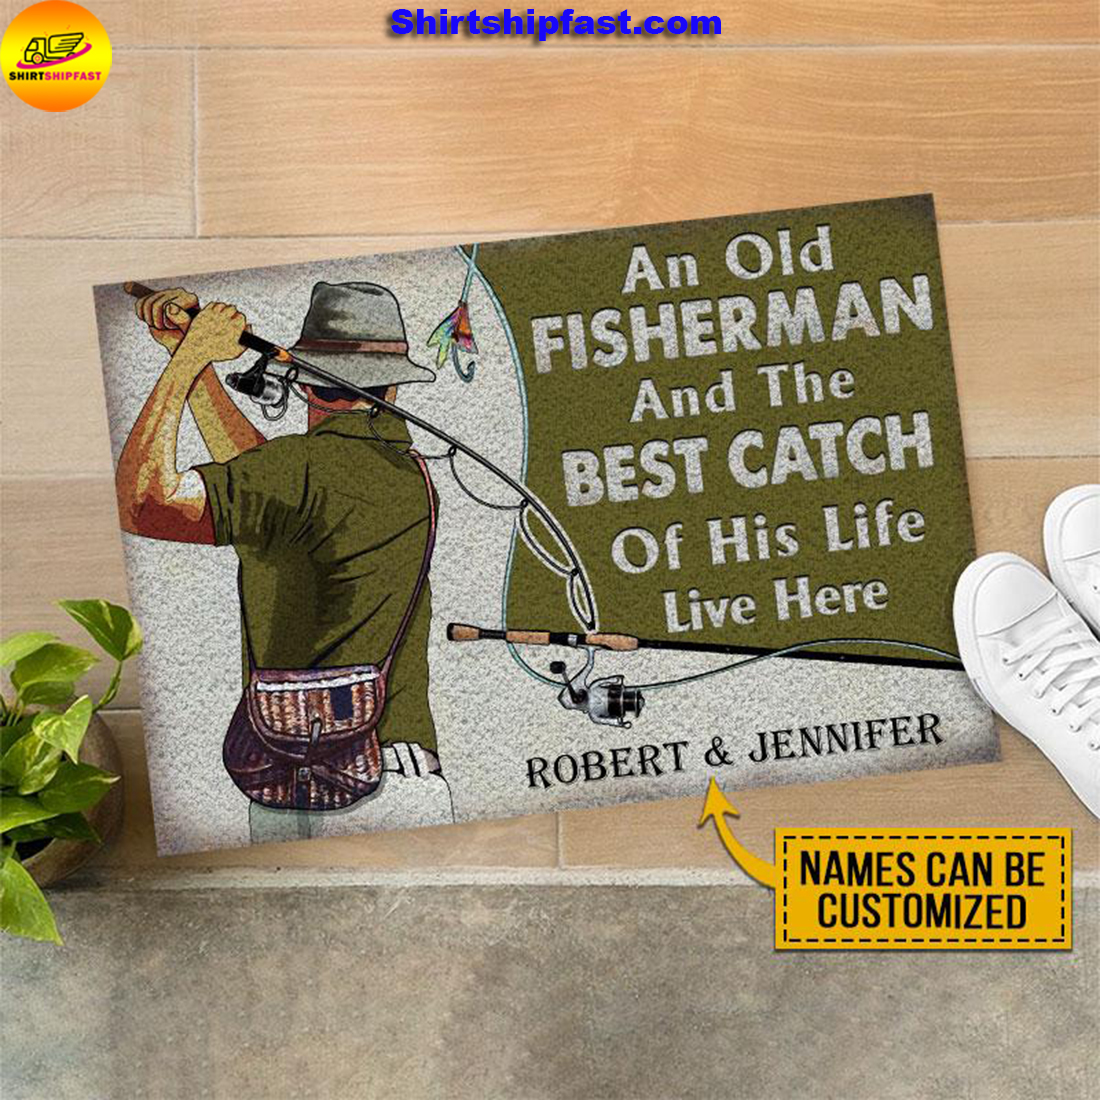 Personalized Fishing Old Couple The Best Catch Live Here Customized Doormat - Picture 1